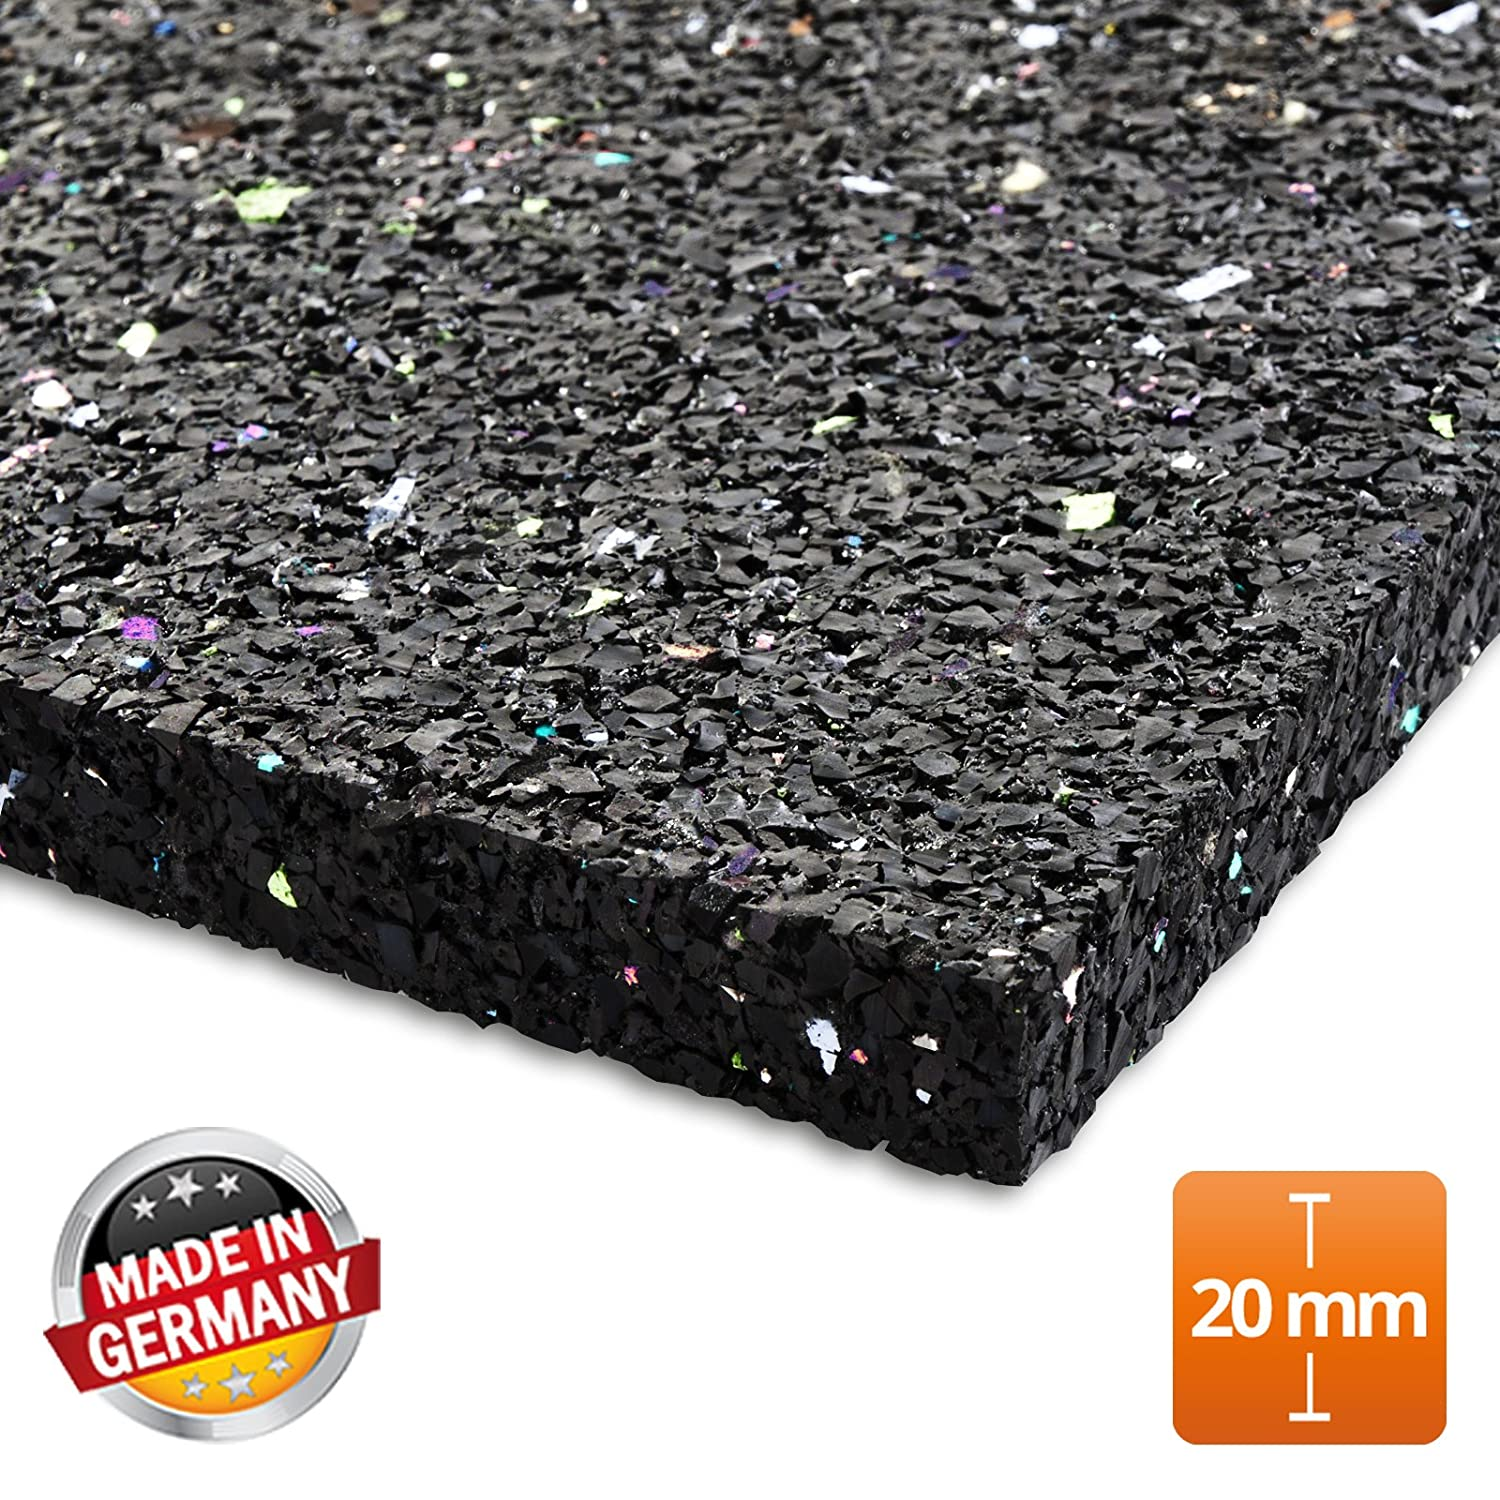 tapis anti vibration etm 60x60cm caoutchouc isonoriant. Black Bedroom Furniture Sets. Home Design Ideas